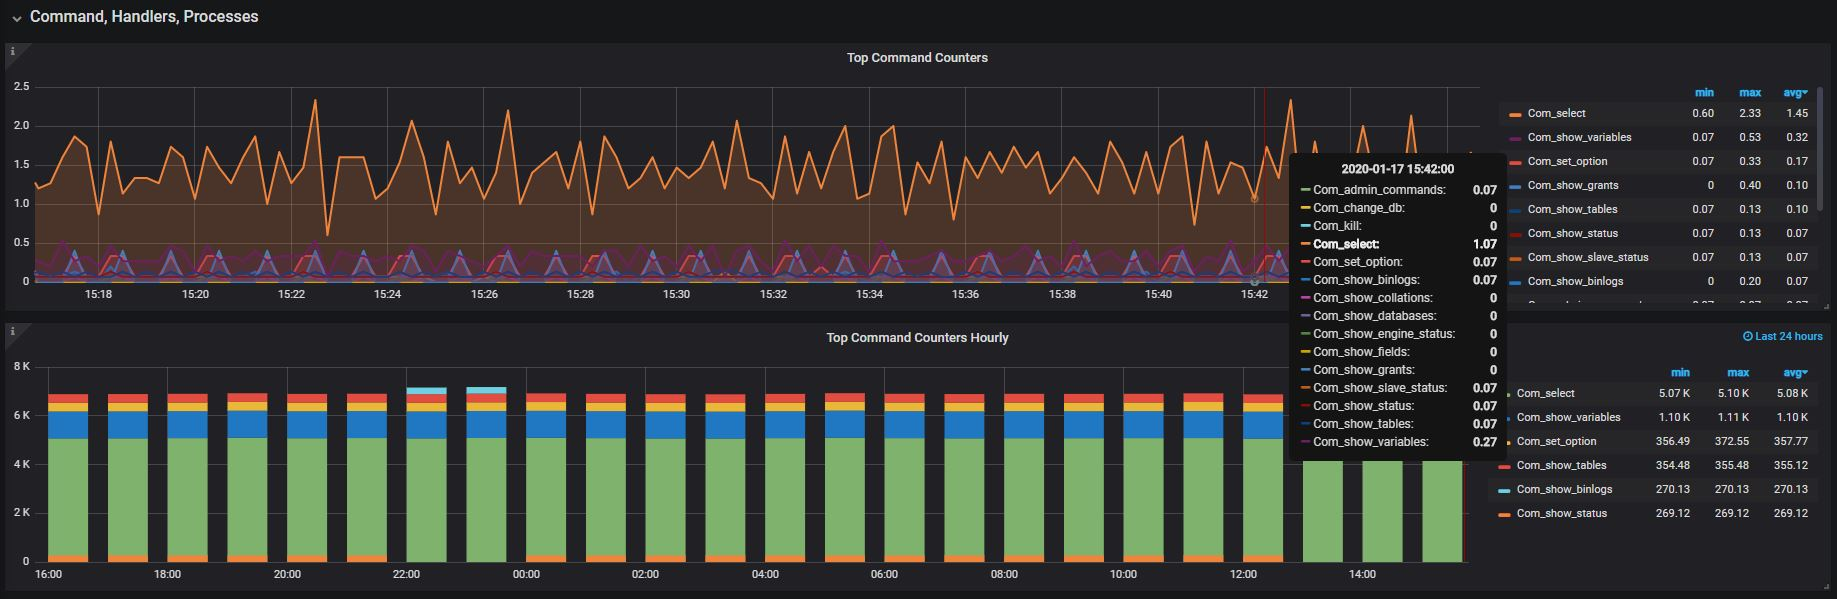 Grafana and Prometheus MySQL Monitoring at ScaleGrid - Top Command Counters